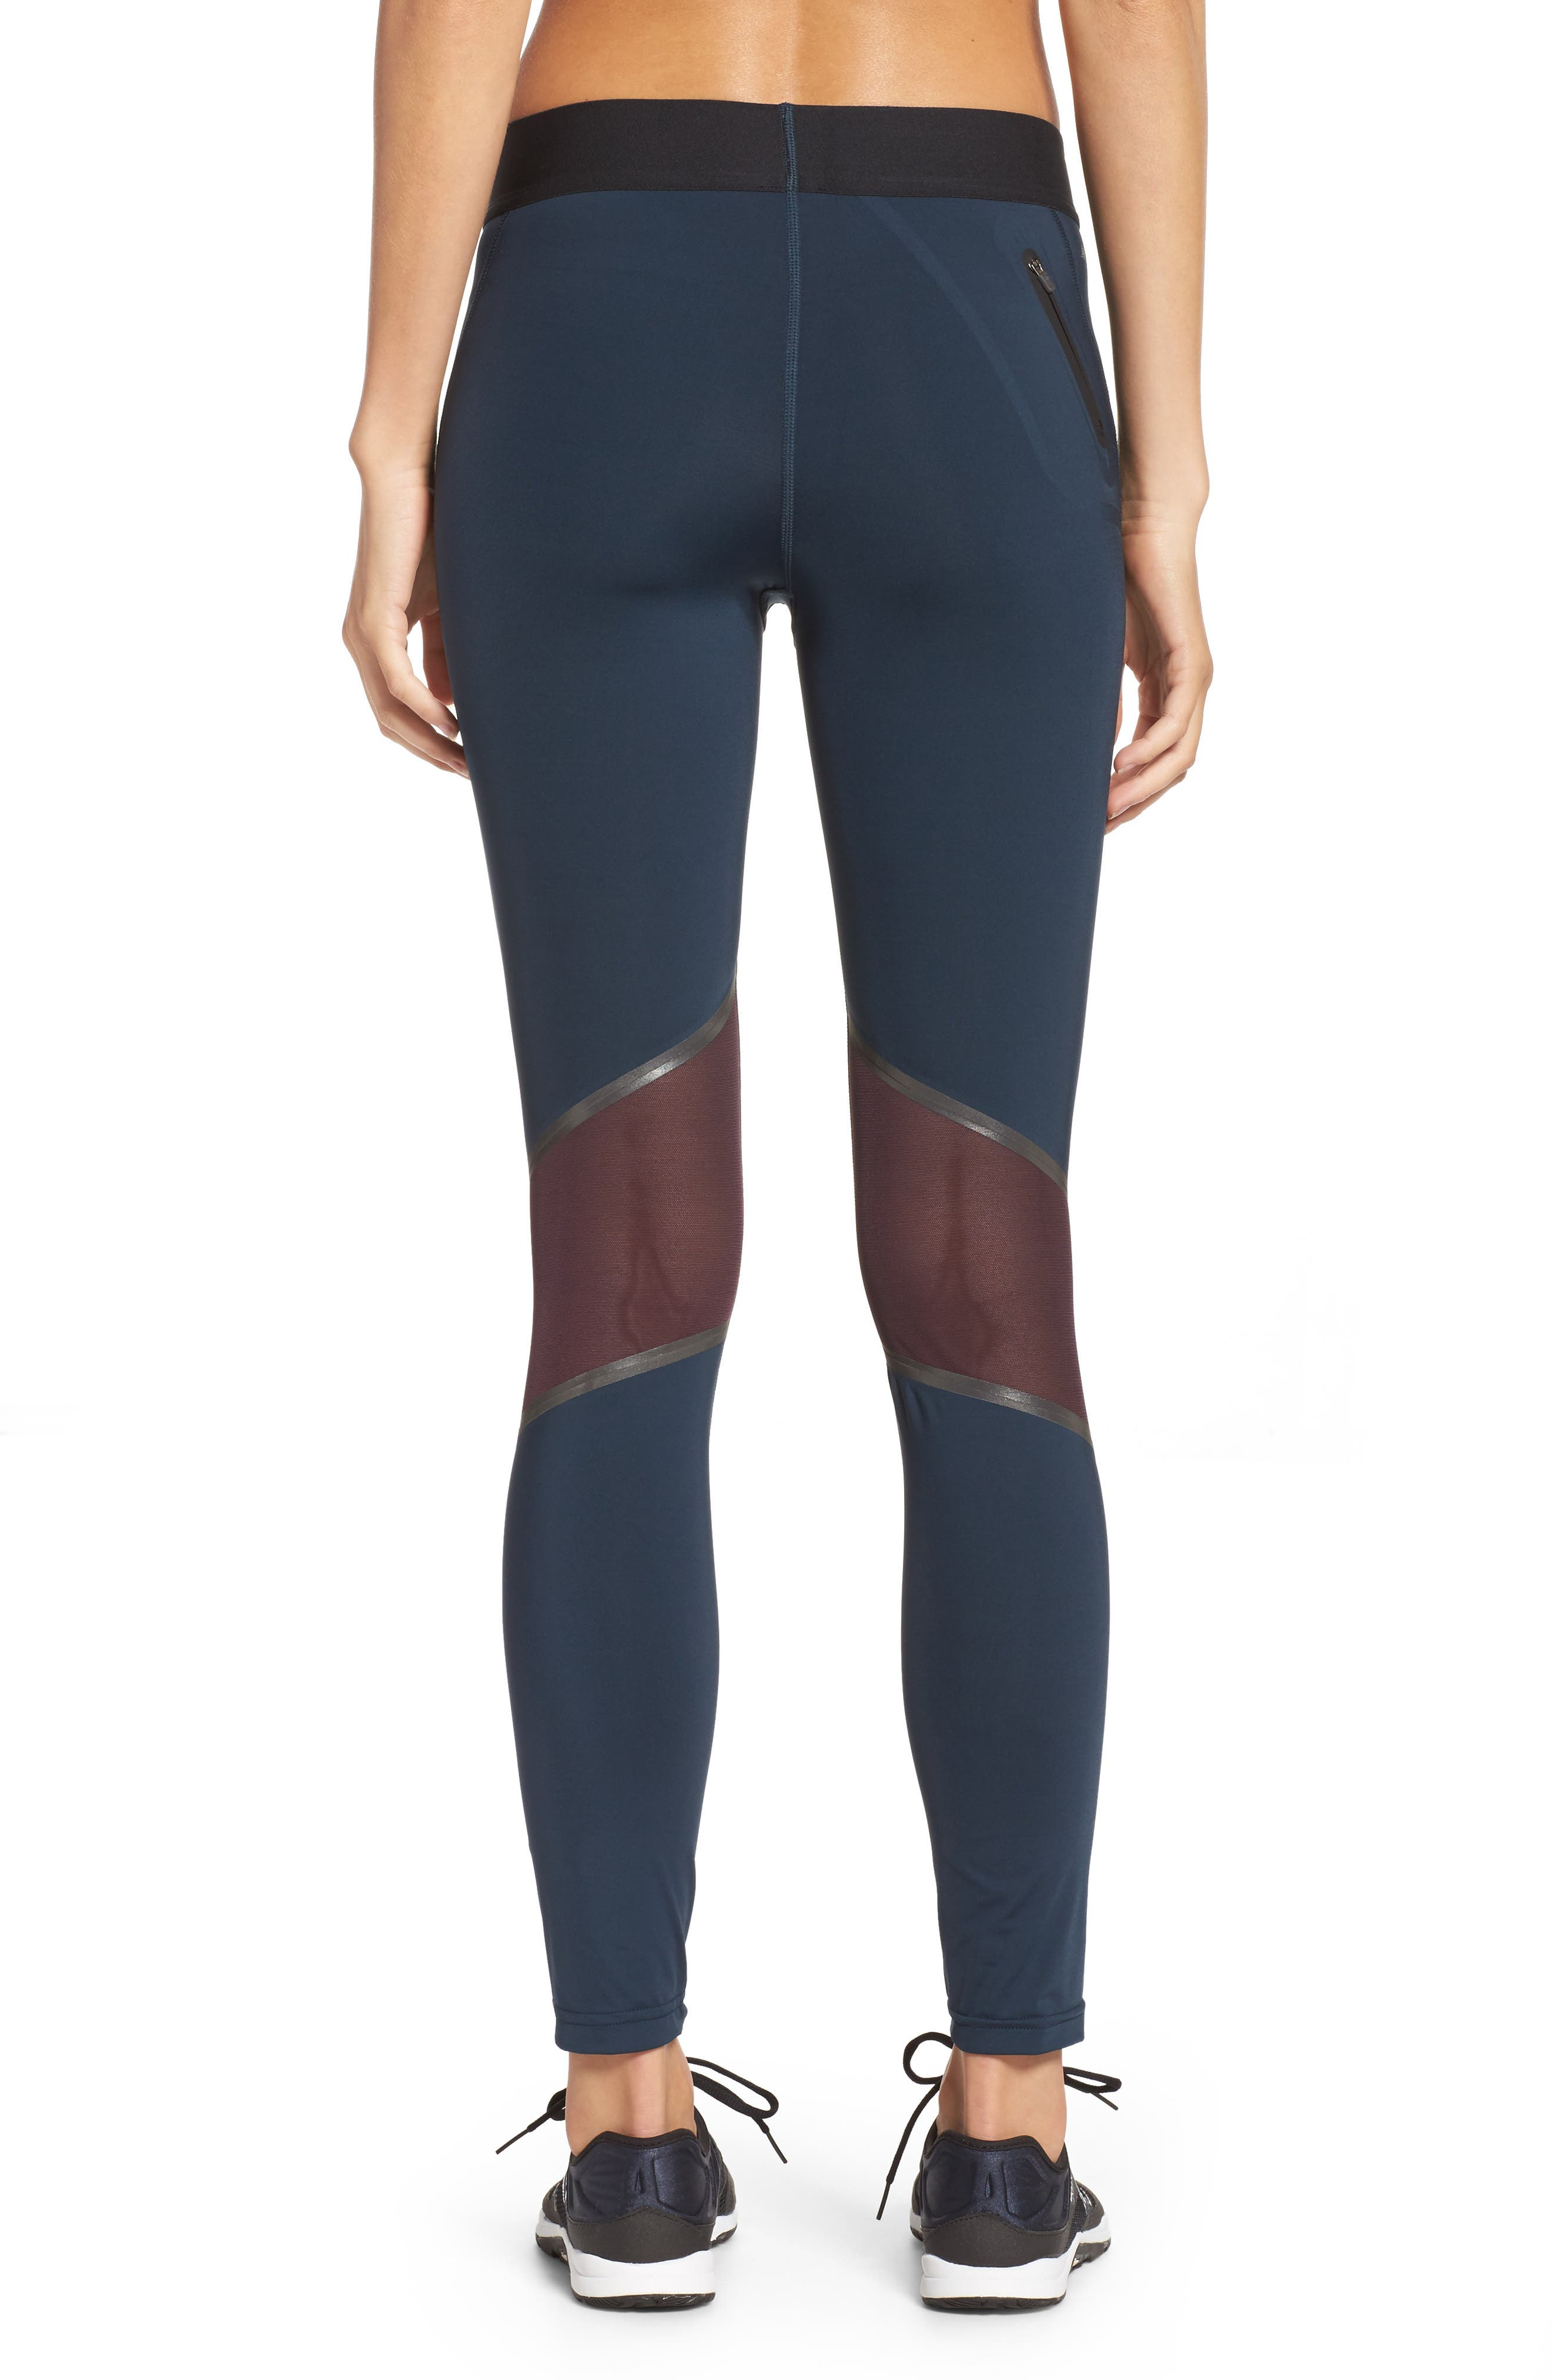 Precision Running Tights,                             Alternate thumbnail 2, color,                             424